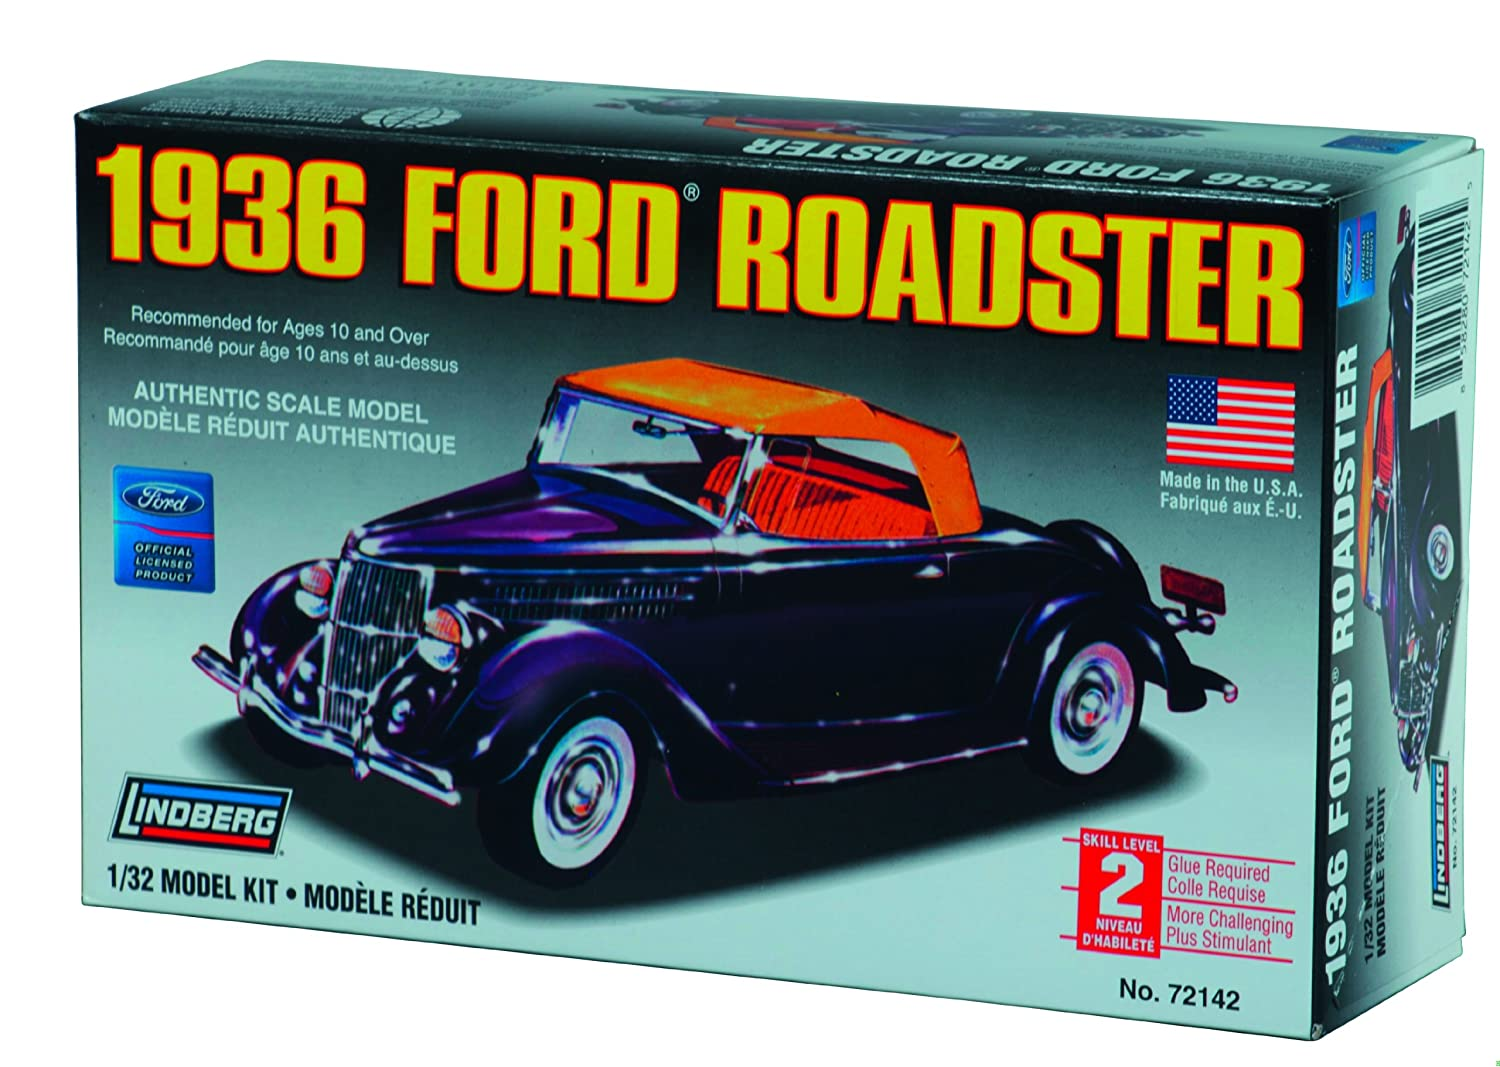 Amazon.com: Lindberg 1936 Ford Roadster 1/32 Scale Plastic Model Car ...